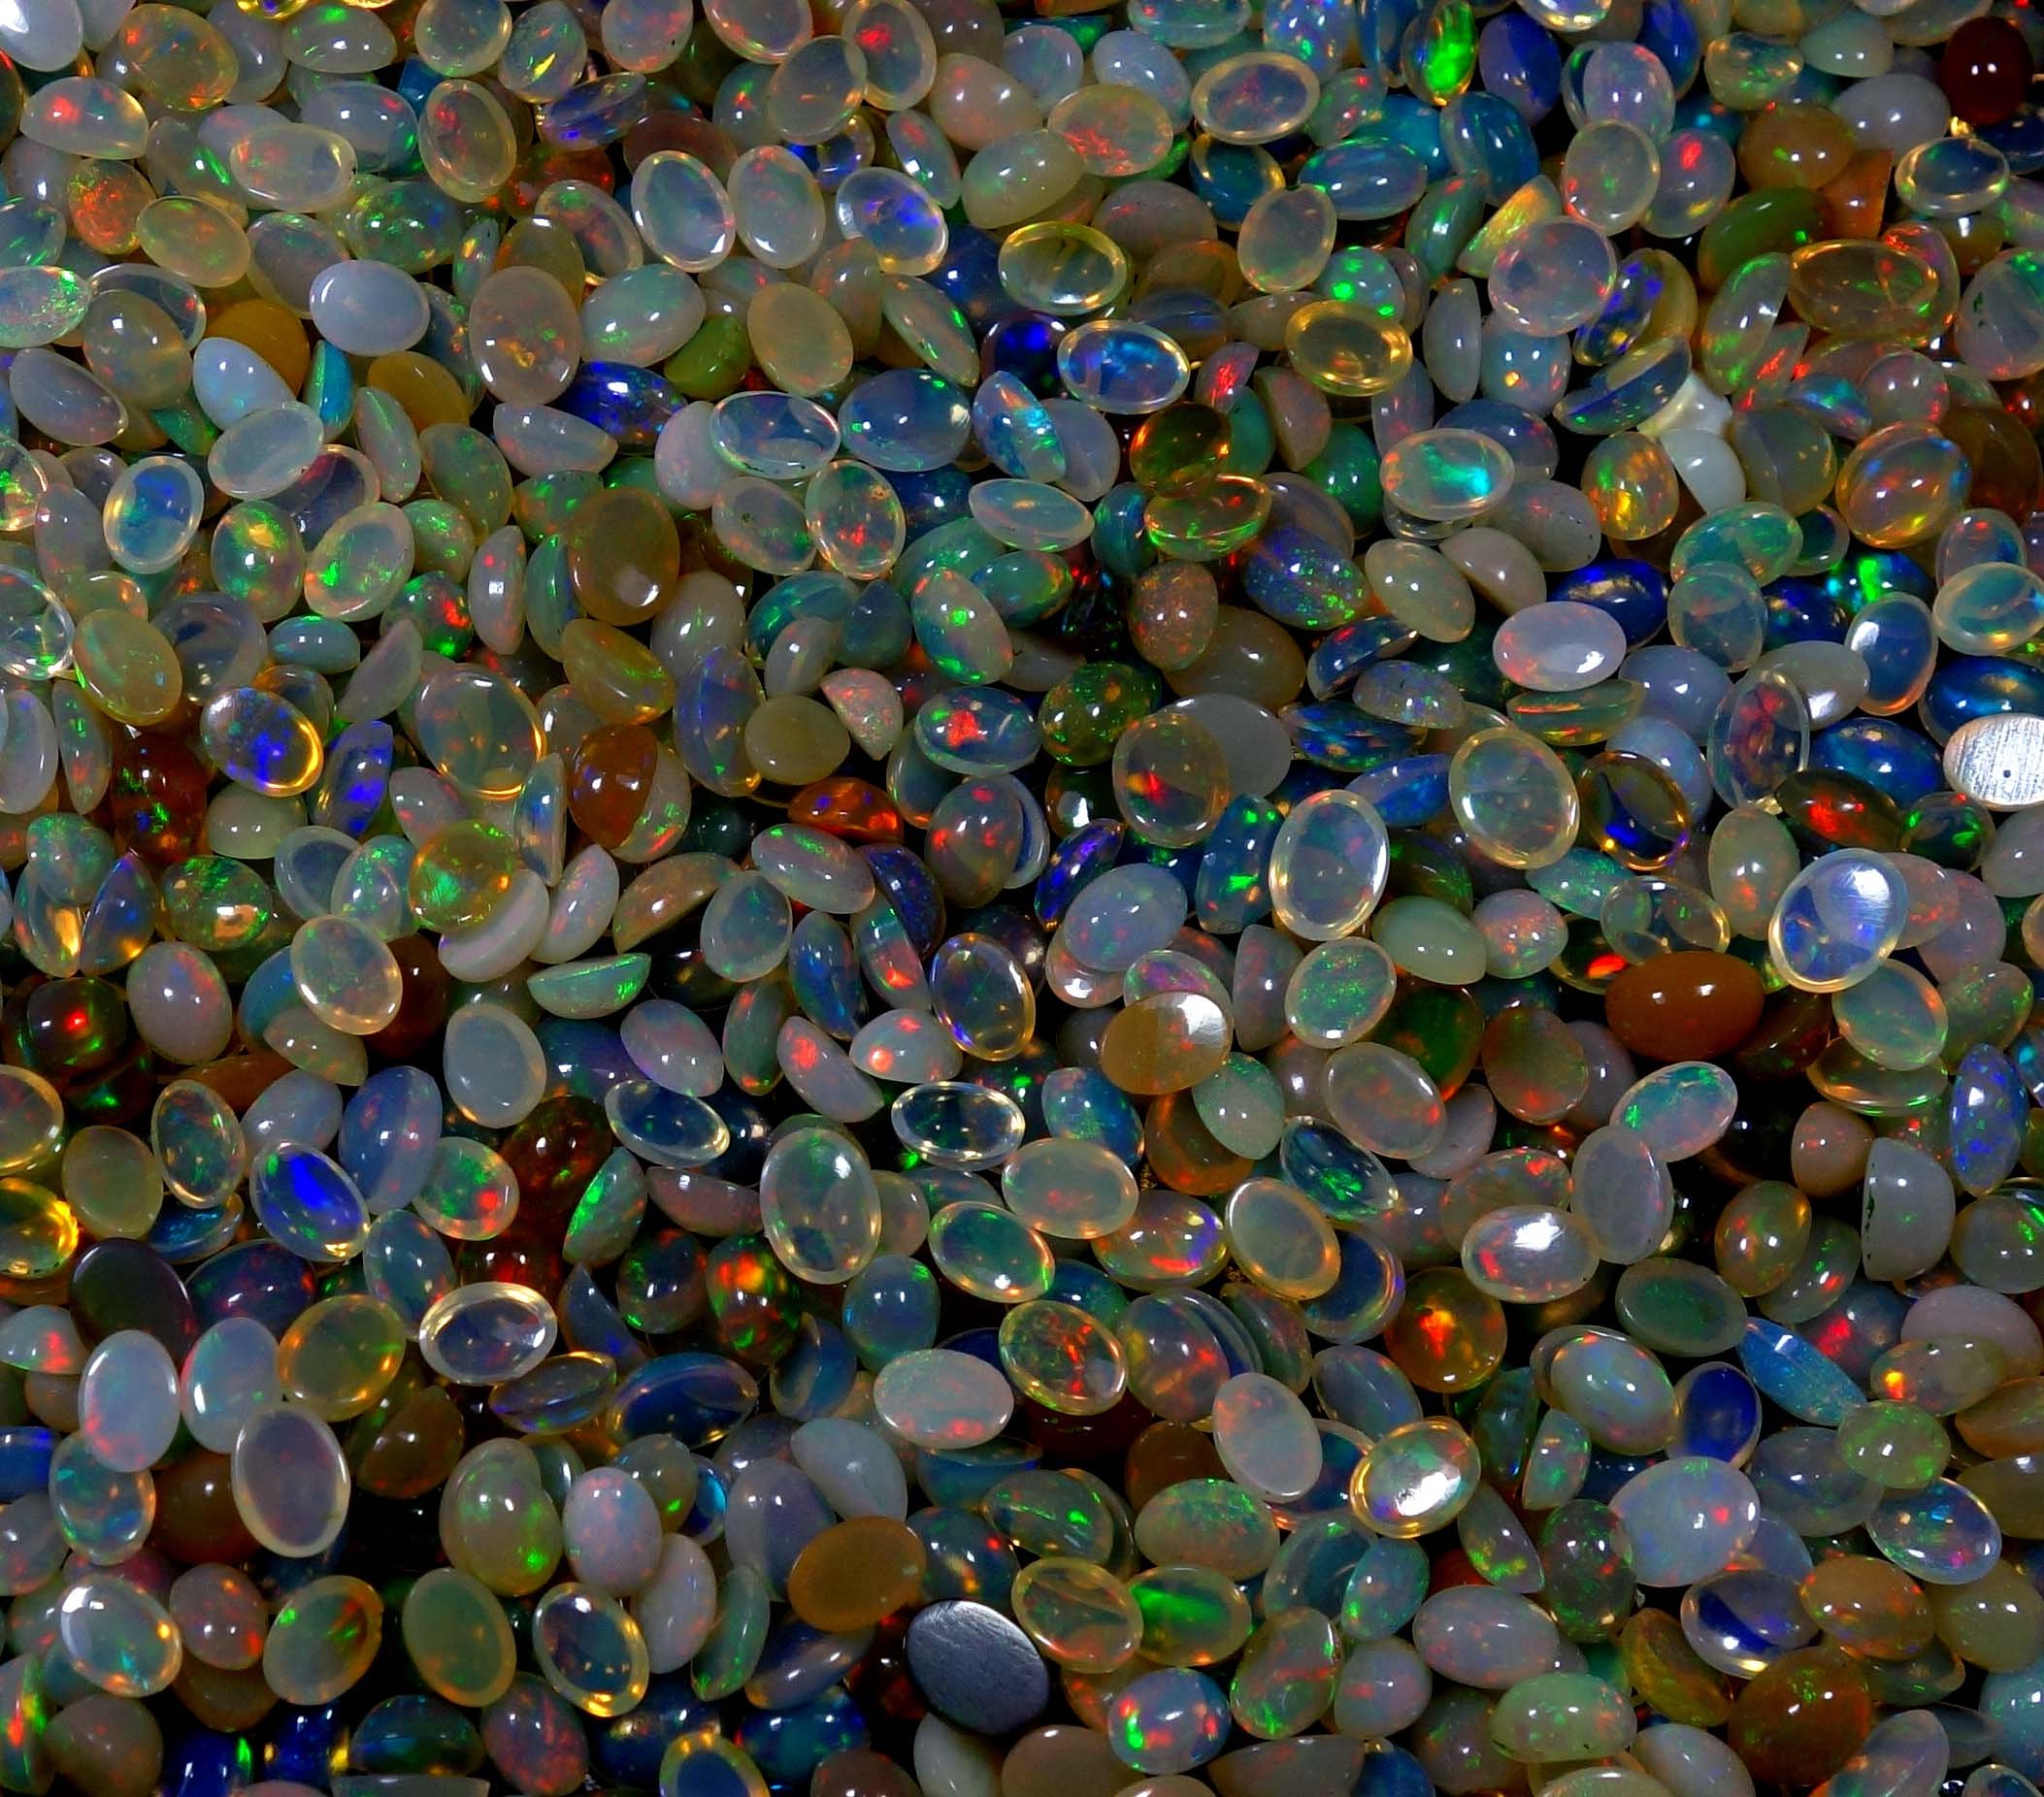 201 Cts Wholesale Lot Natural Ethiopian Welo Multi Fire Opal Calibrate Mix Shape Cabochons Gemstone